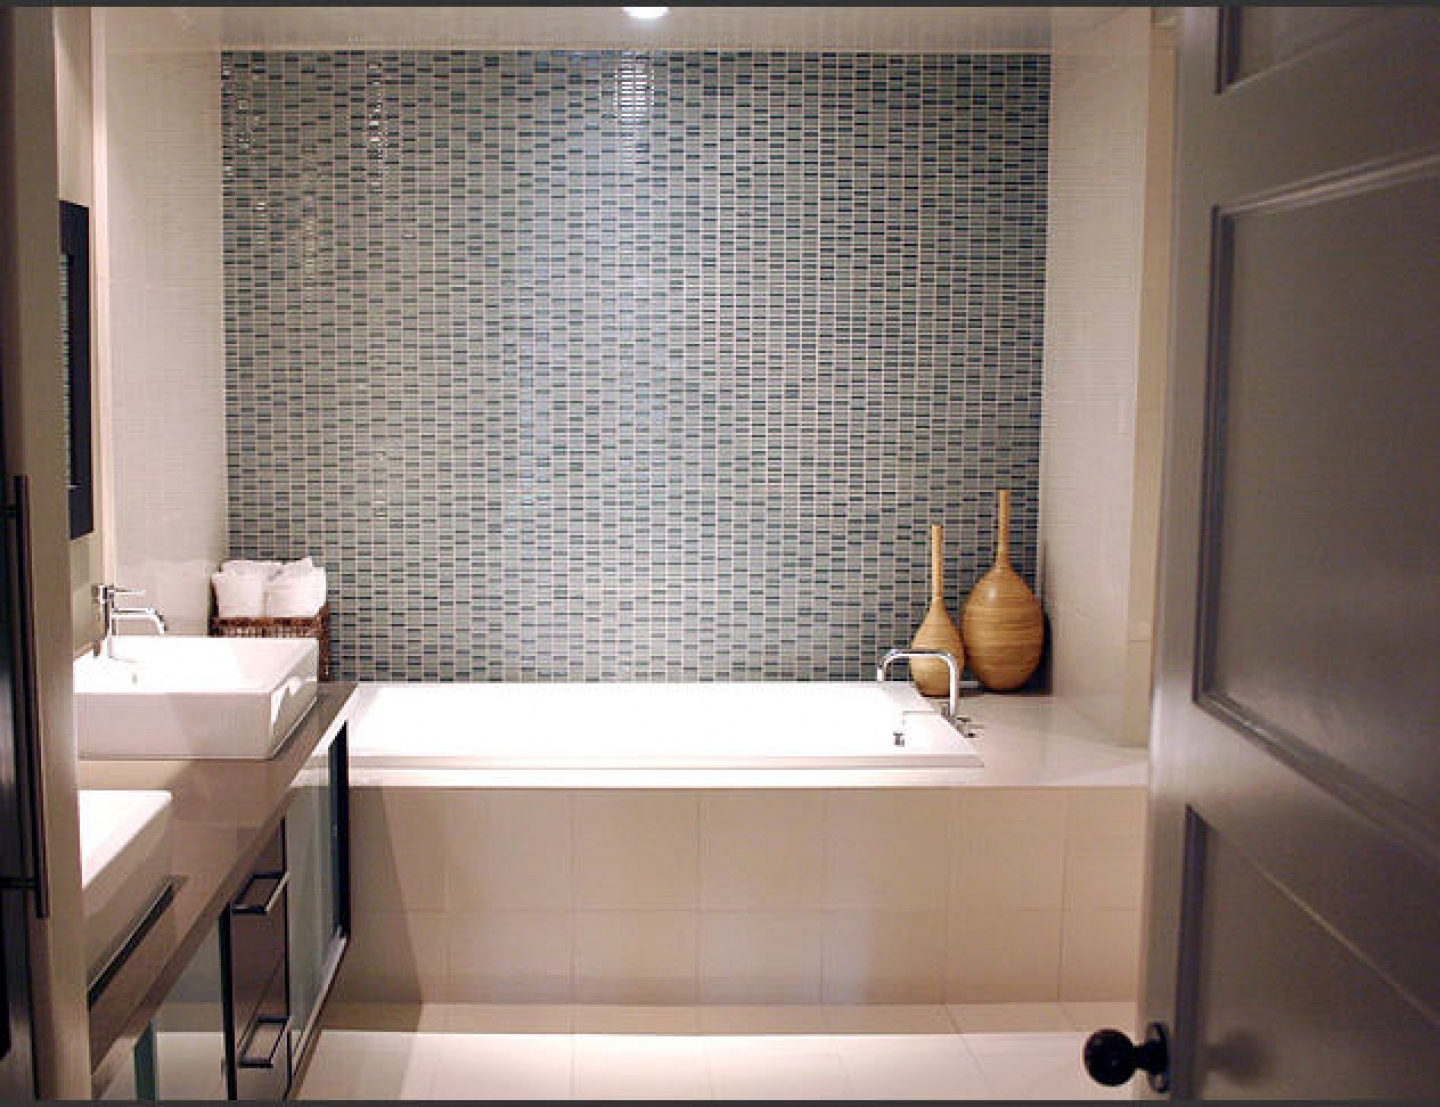 30 Magnificent Ideas And Pictures Of S Bathroom Tiles